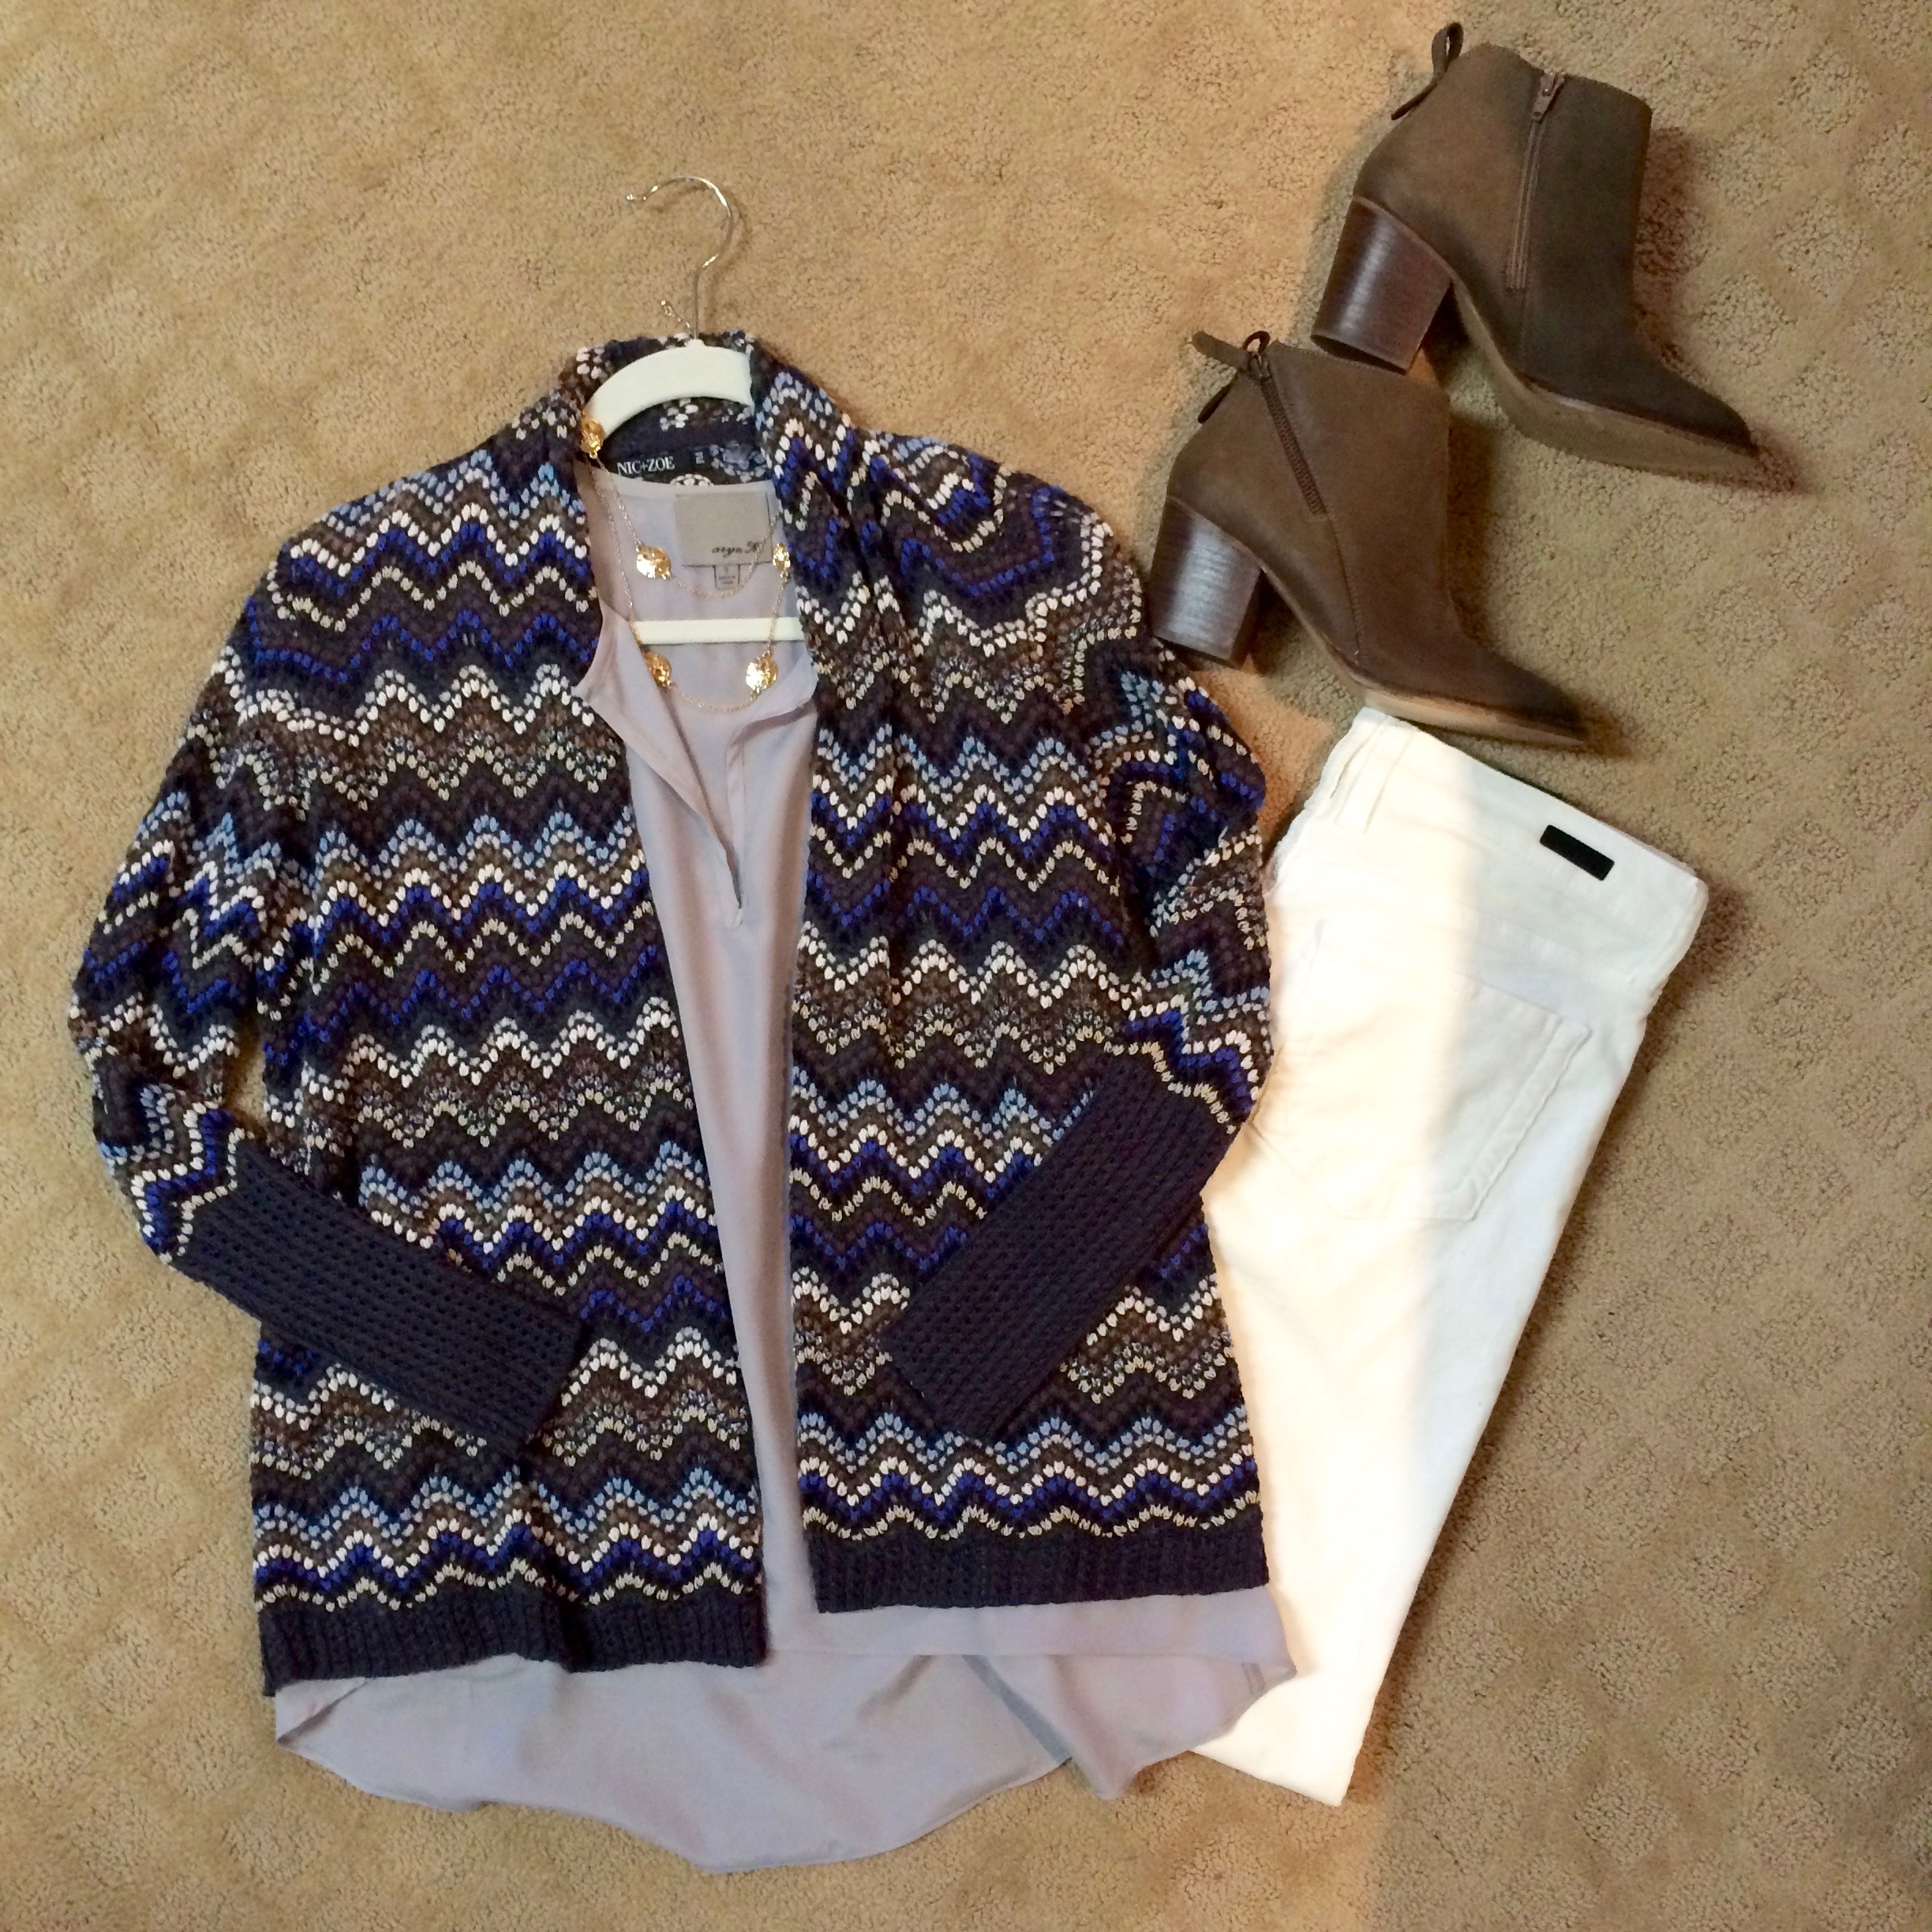 zigzag cardi and white cords.jpg